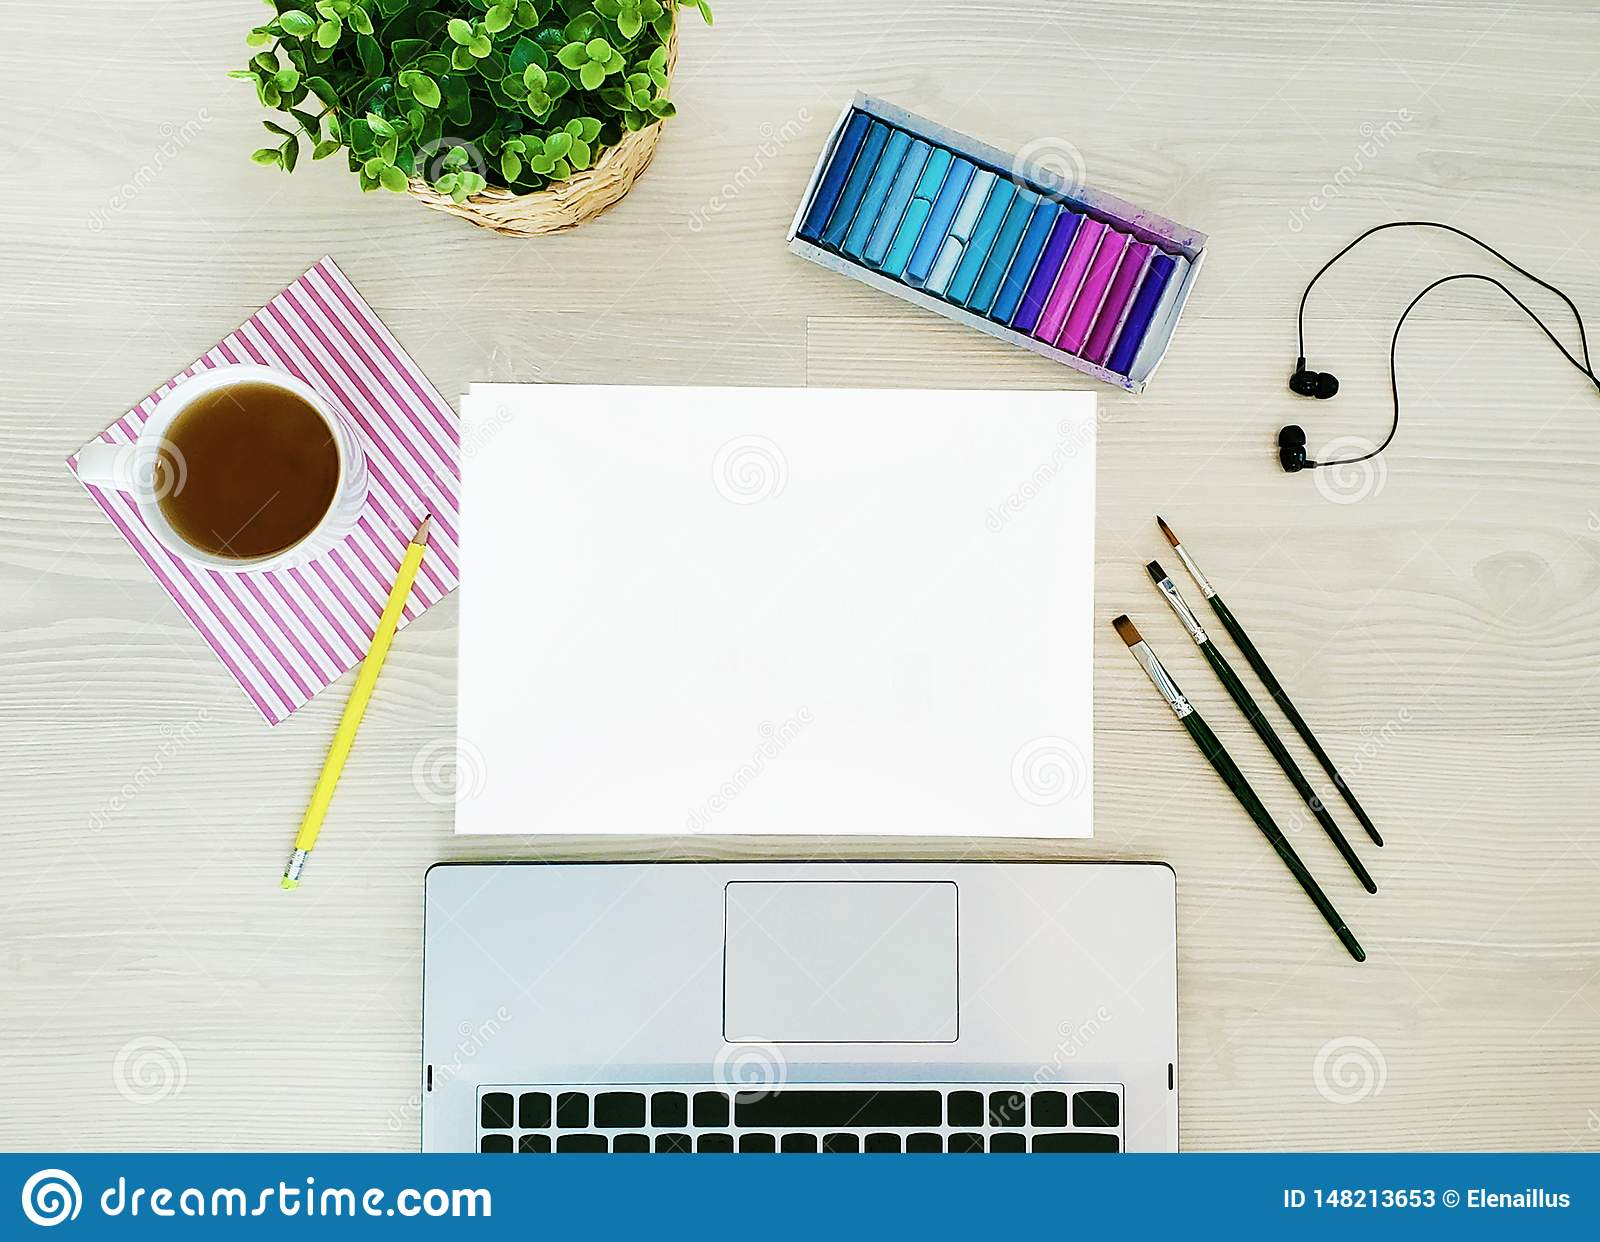 Designer, artist workplace. Creative, trendy,artistic mock up with paper, coffee,notebook or keyboard, earphones, a yellow pencil.